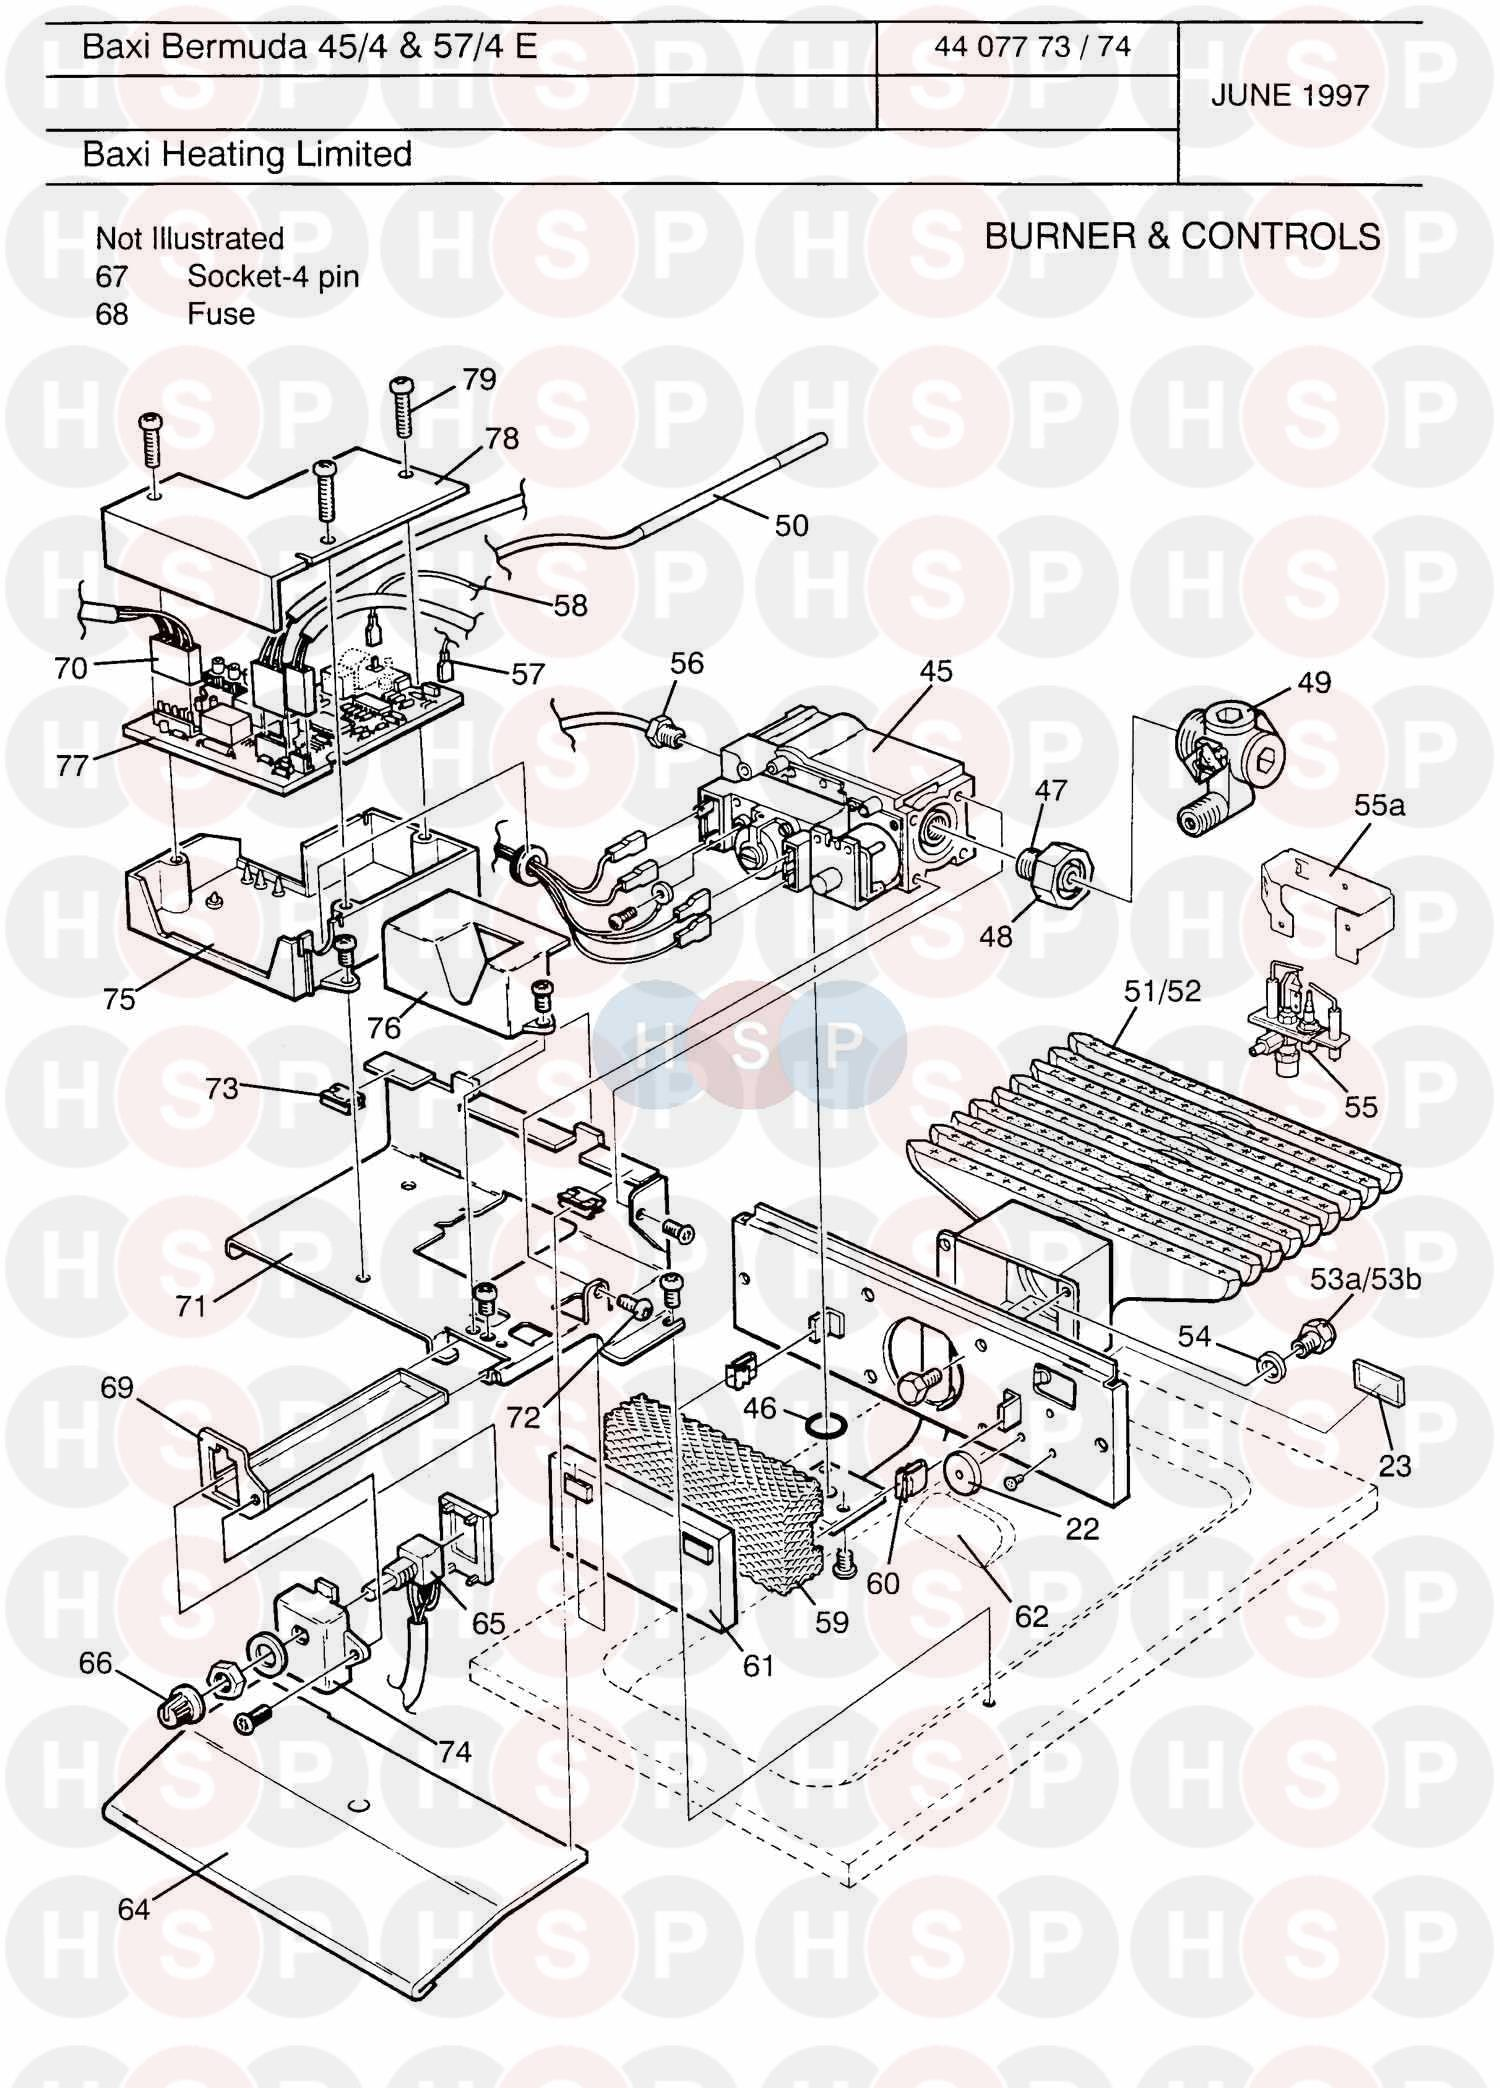 baxi bermuda 45  4 electronic  burner  u0026 controls  diagram